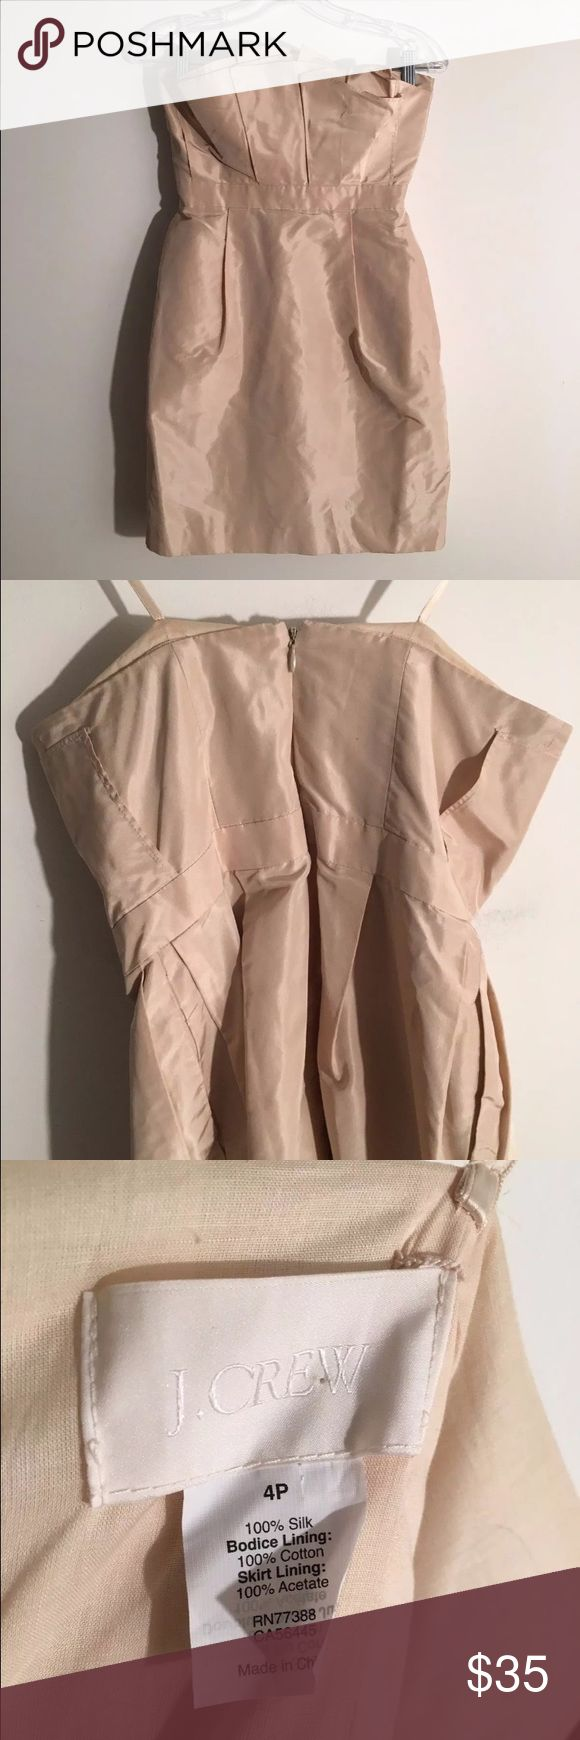 J.Crew Nude Beige Silk strapless petite Mini Dress 100% silk mini dress. Elegant and beautifully. Perfect for a cocktail party or summer wedding. Mark on the lower bottom back of dress. Origami like folds on front. Size: 4P (Petite) Strapless. J. Crew Dresses Mini